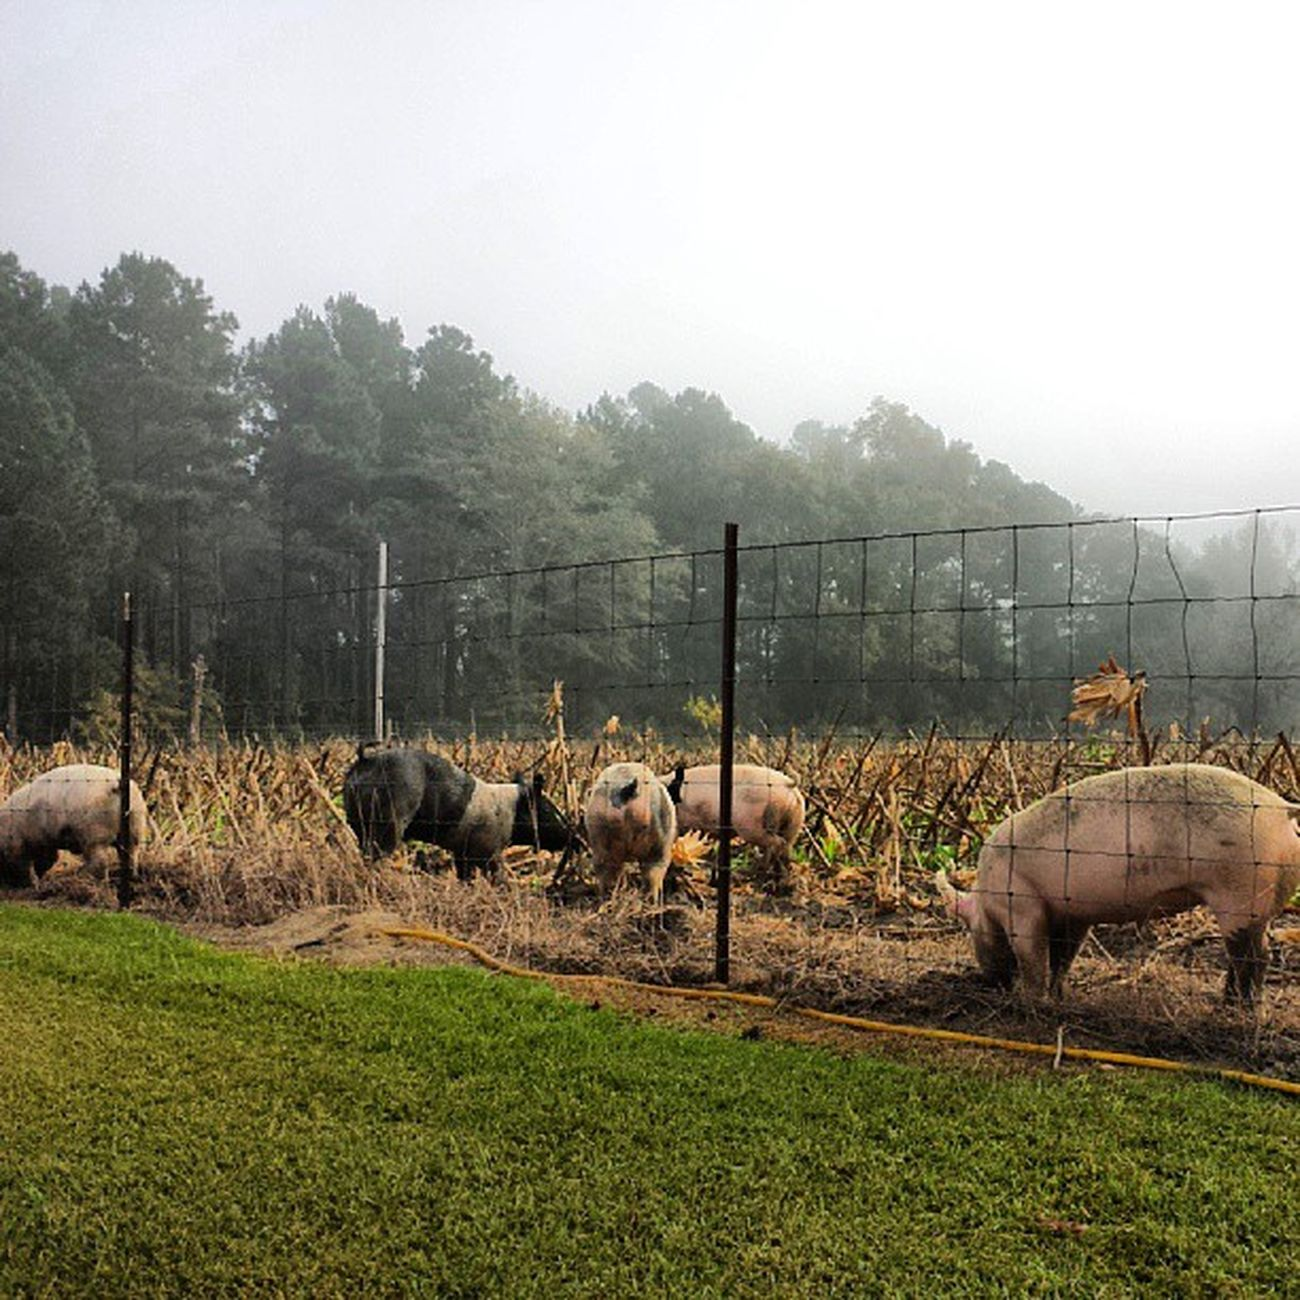 Pork, Chop, Bacon, Side, and Stumpy playing in the field on a foggy morning. Pigs Ruralgeorgia Harrisonga Georgia